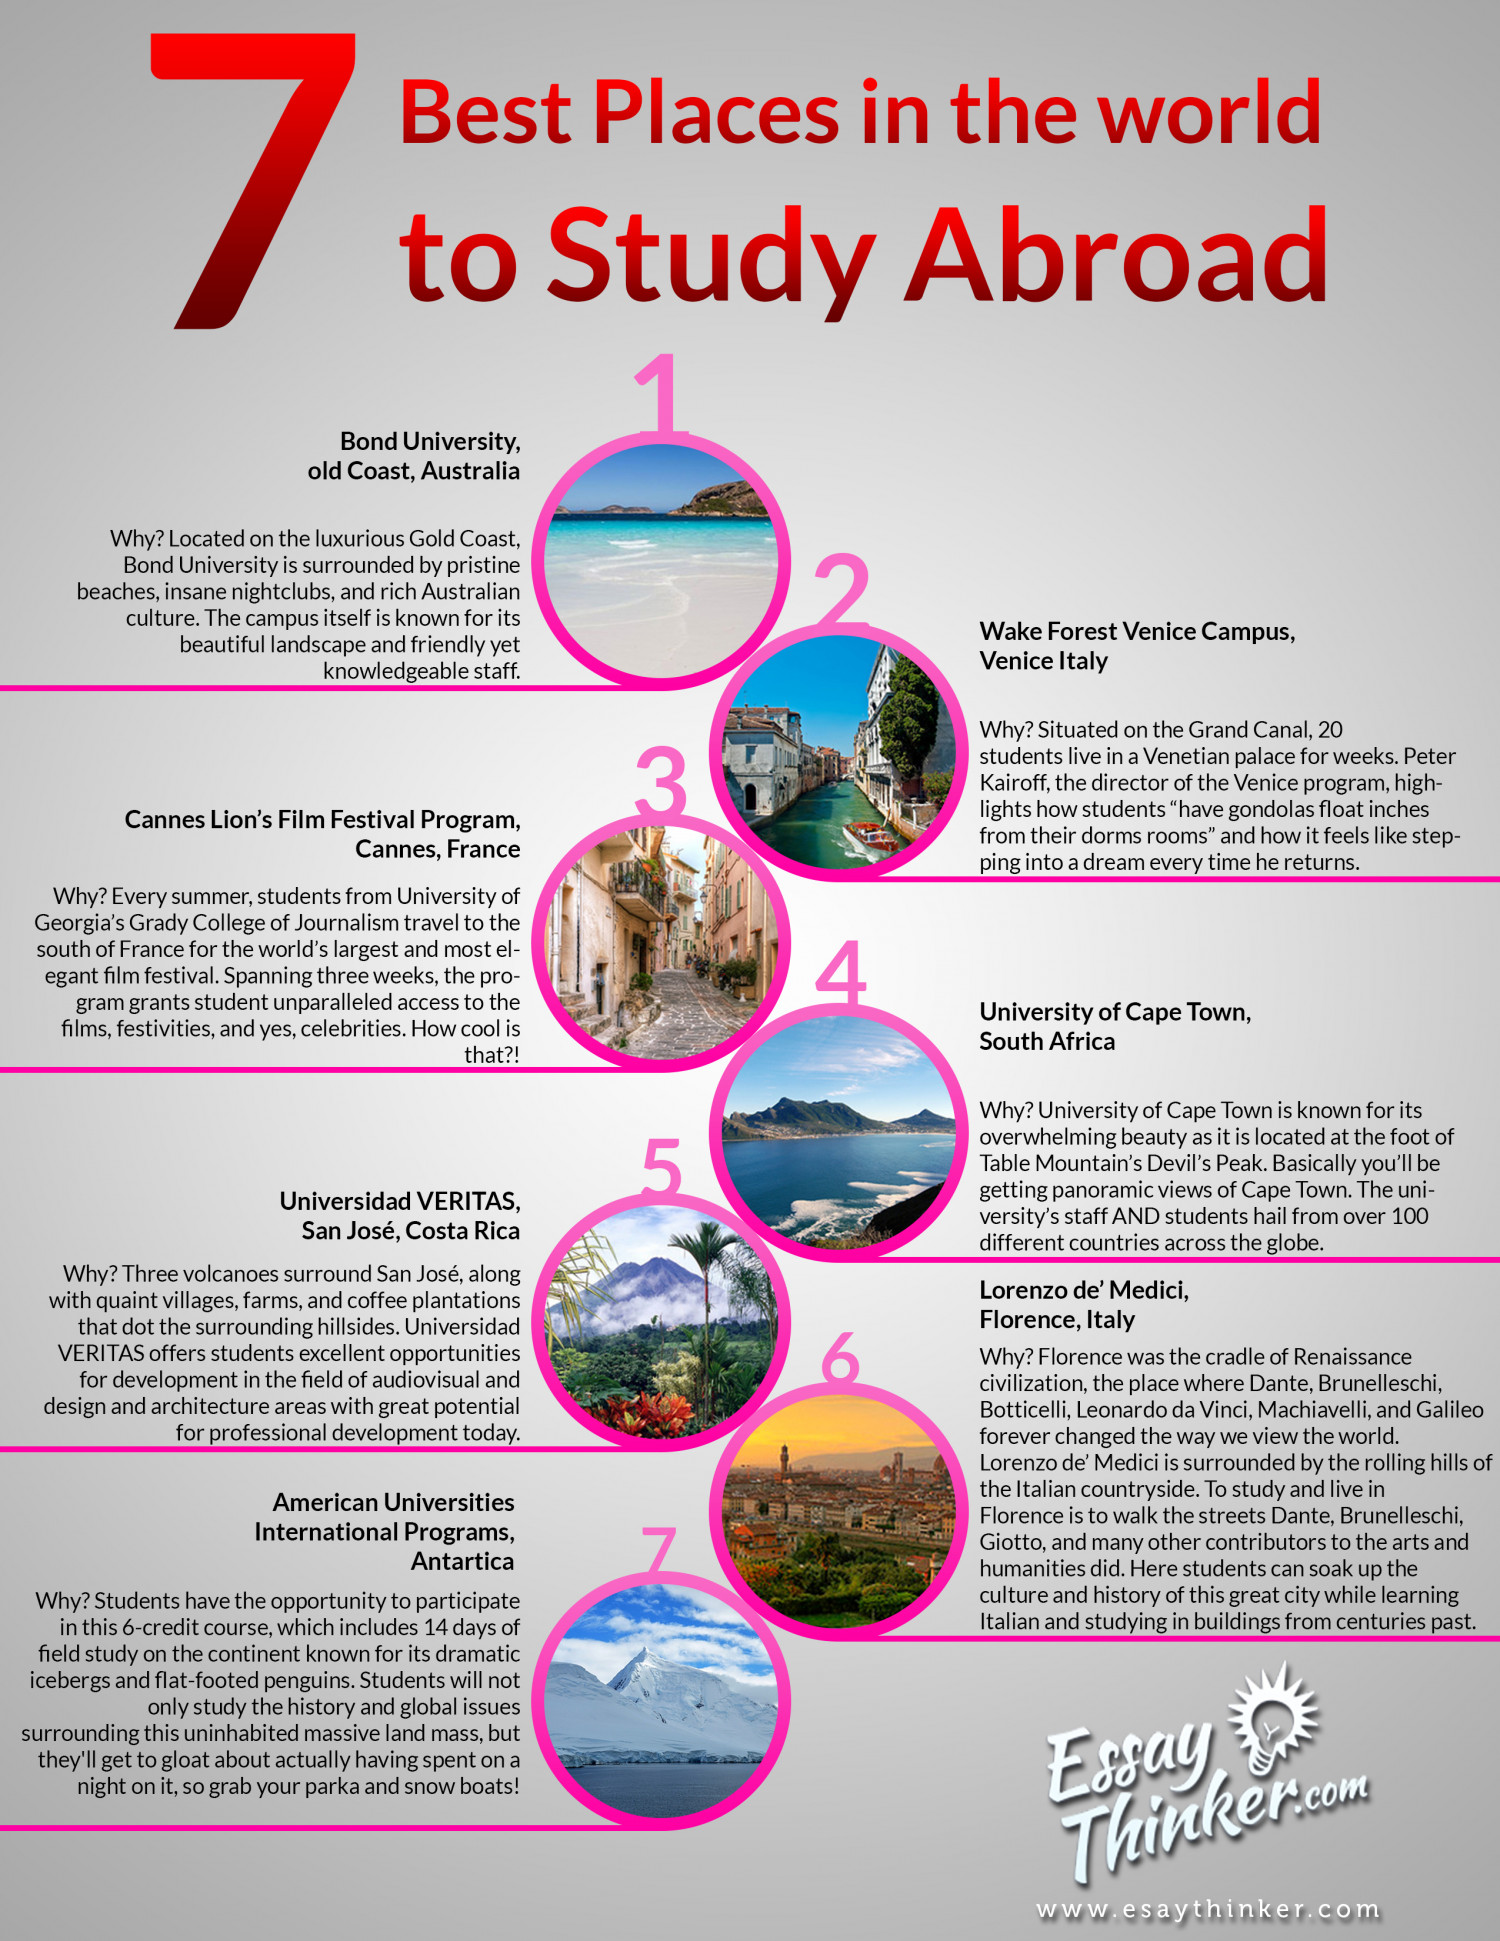 7 Best Places in the World to Study Abroad Infographic